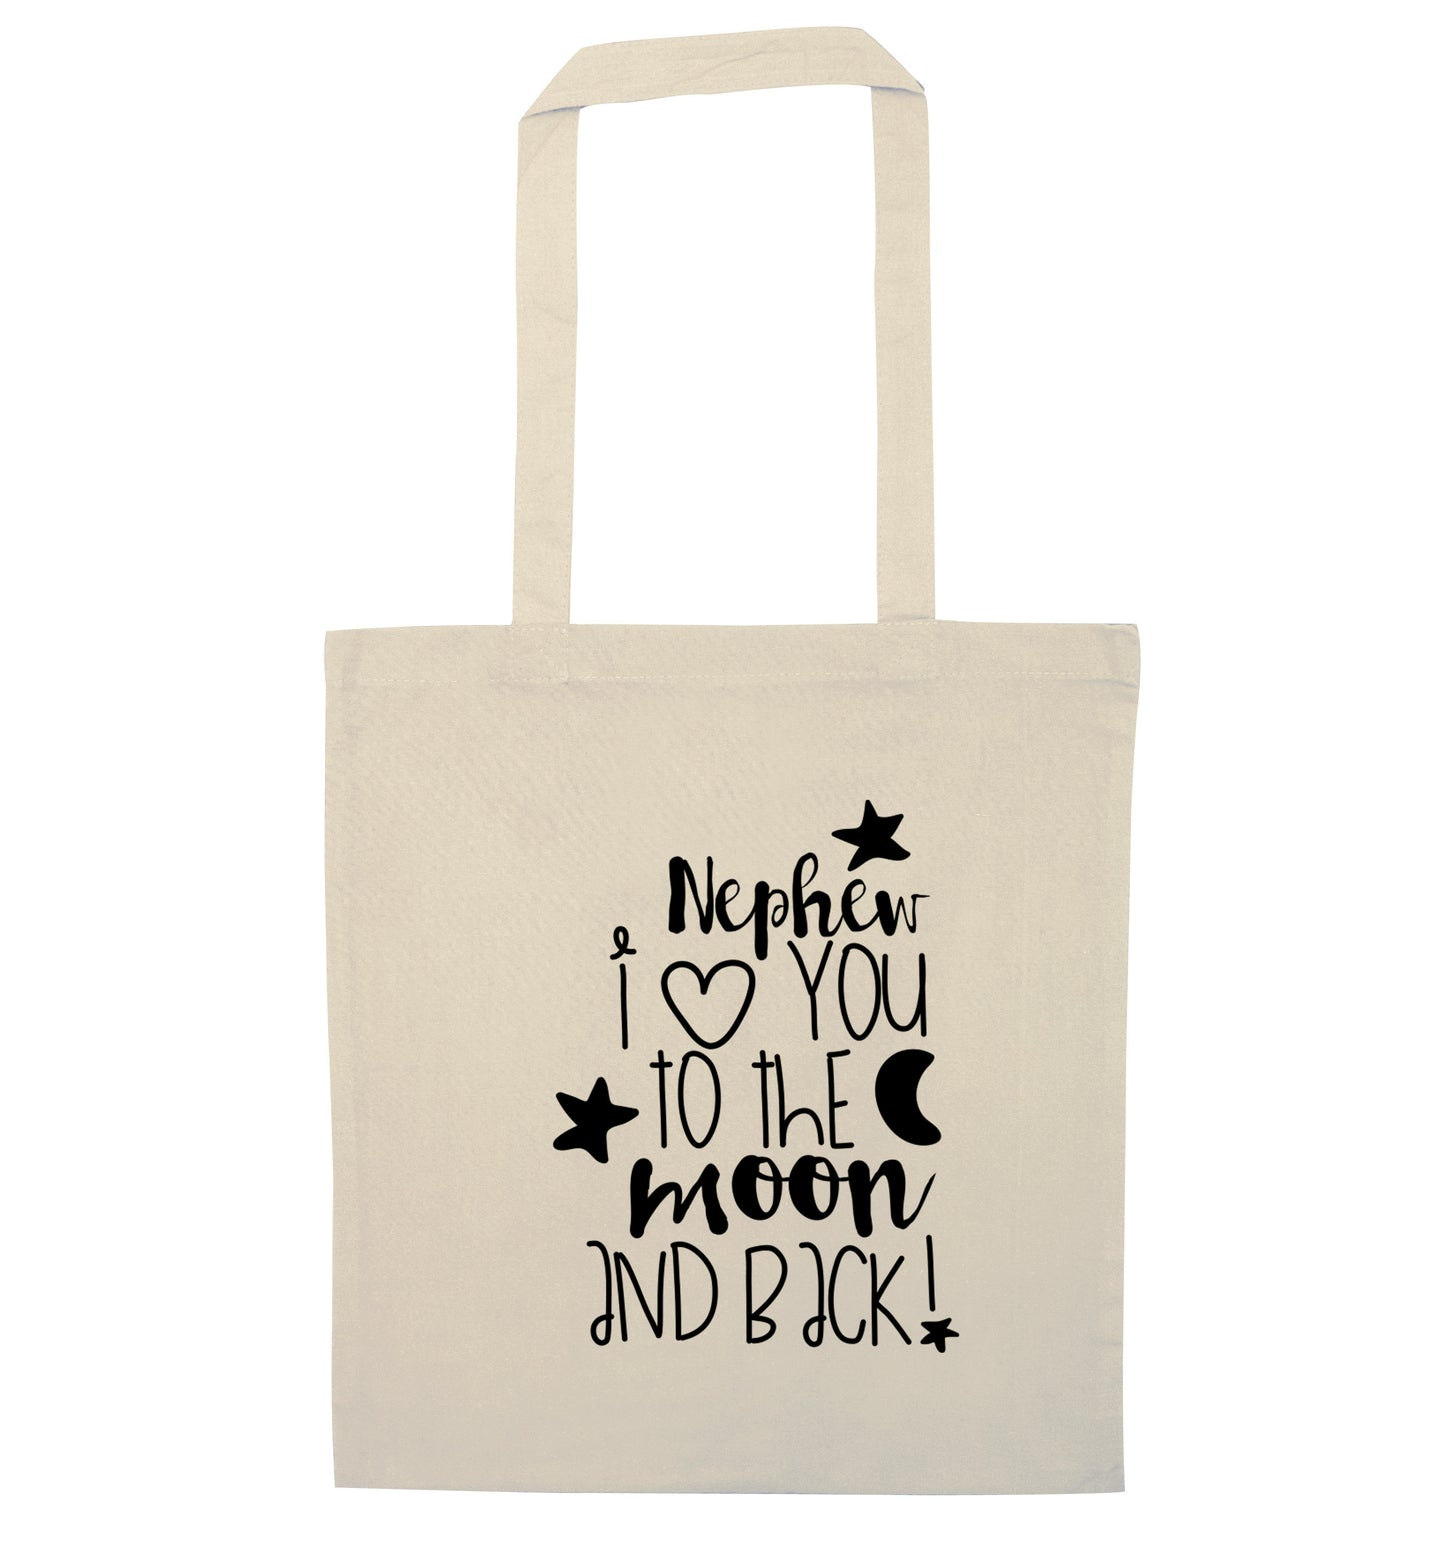 Nephew I love you to the moon and back natural tote bag